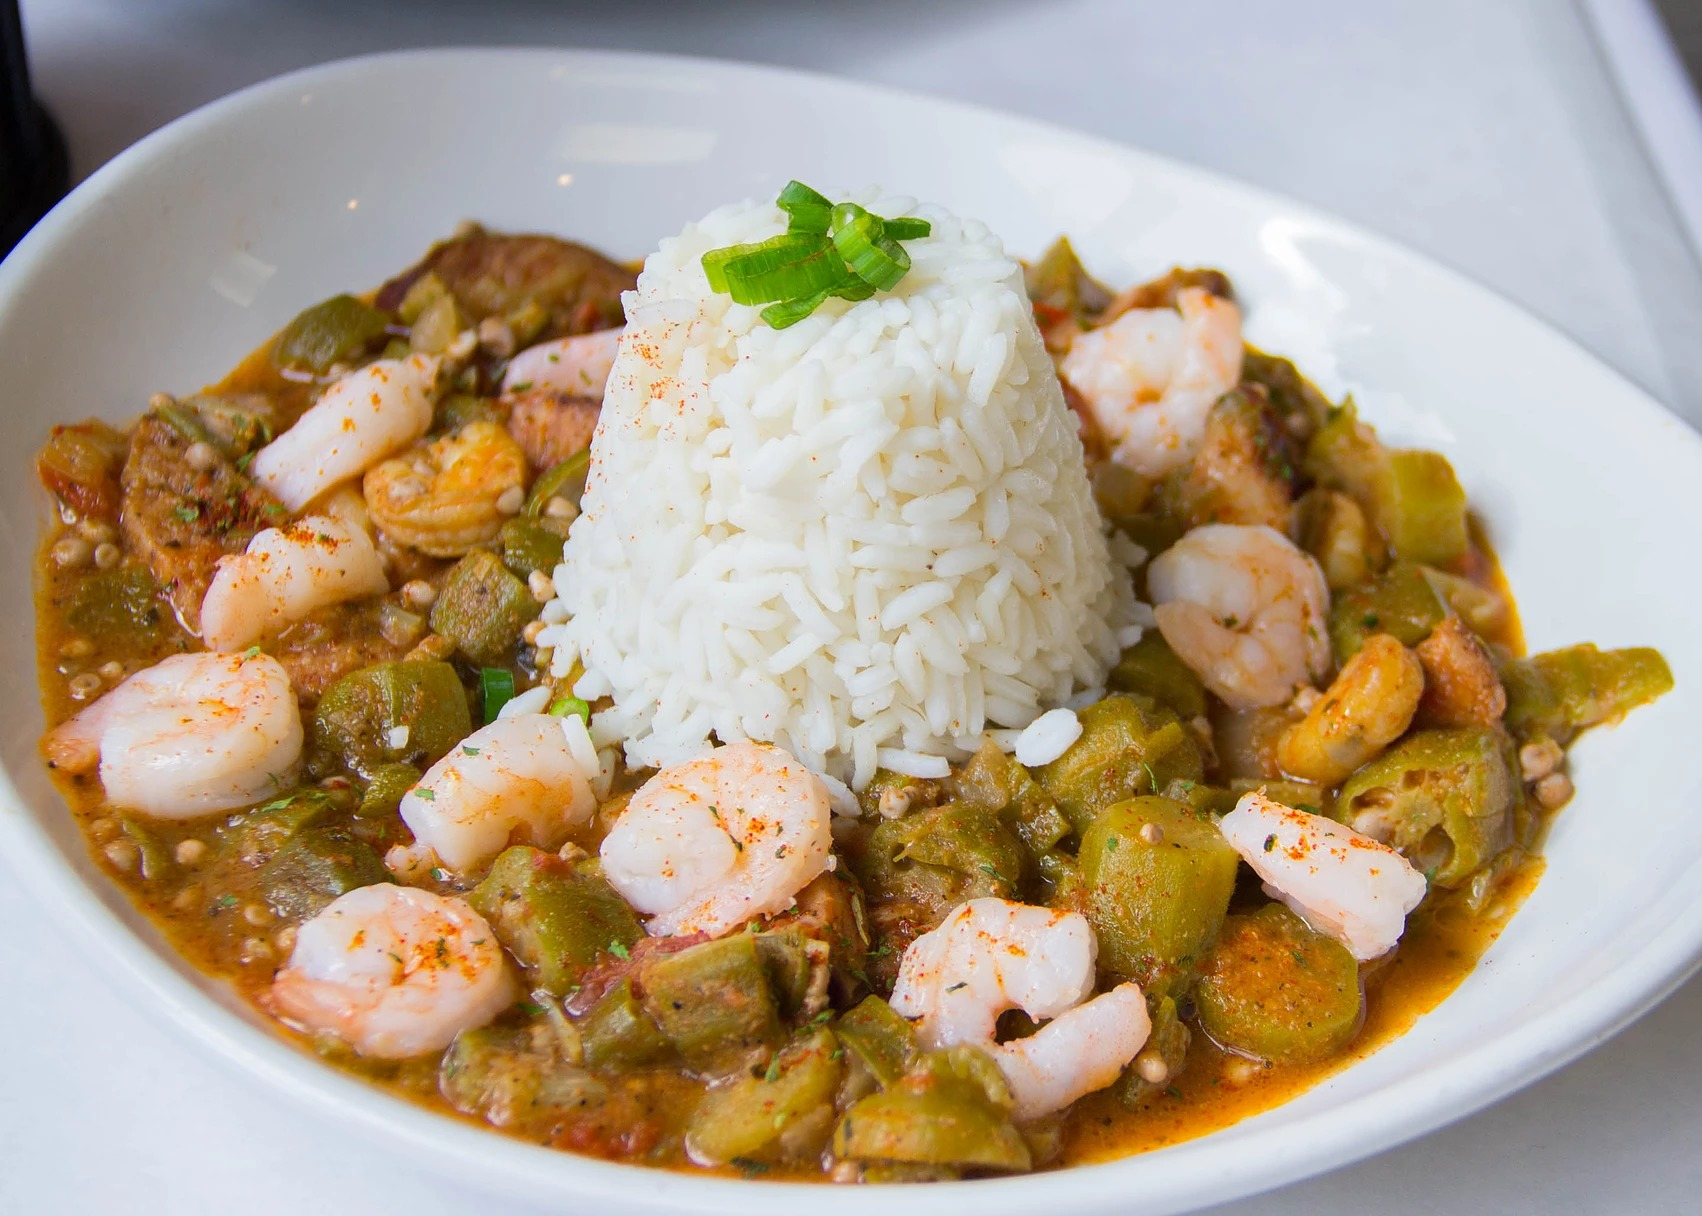 A dish with an okra, tomato, and sausage base topped with shrimp and served with white rice in the center